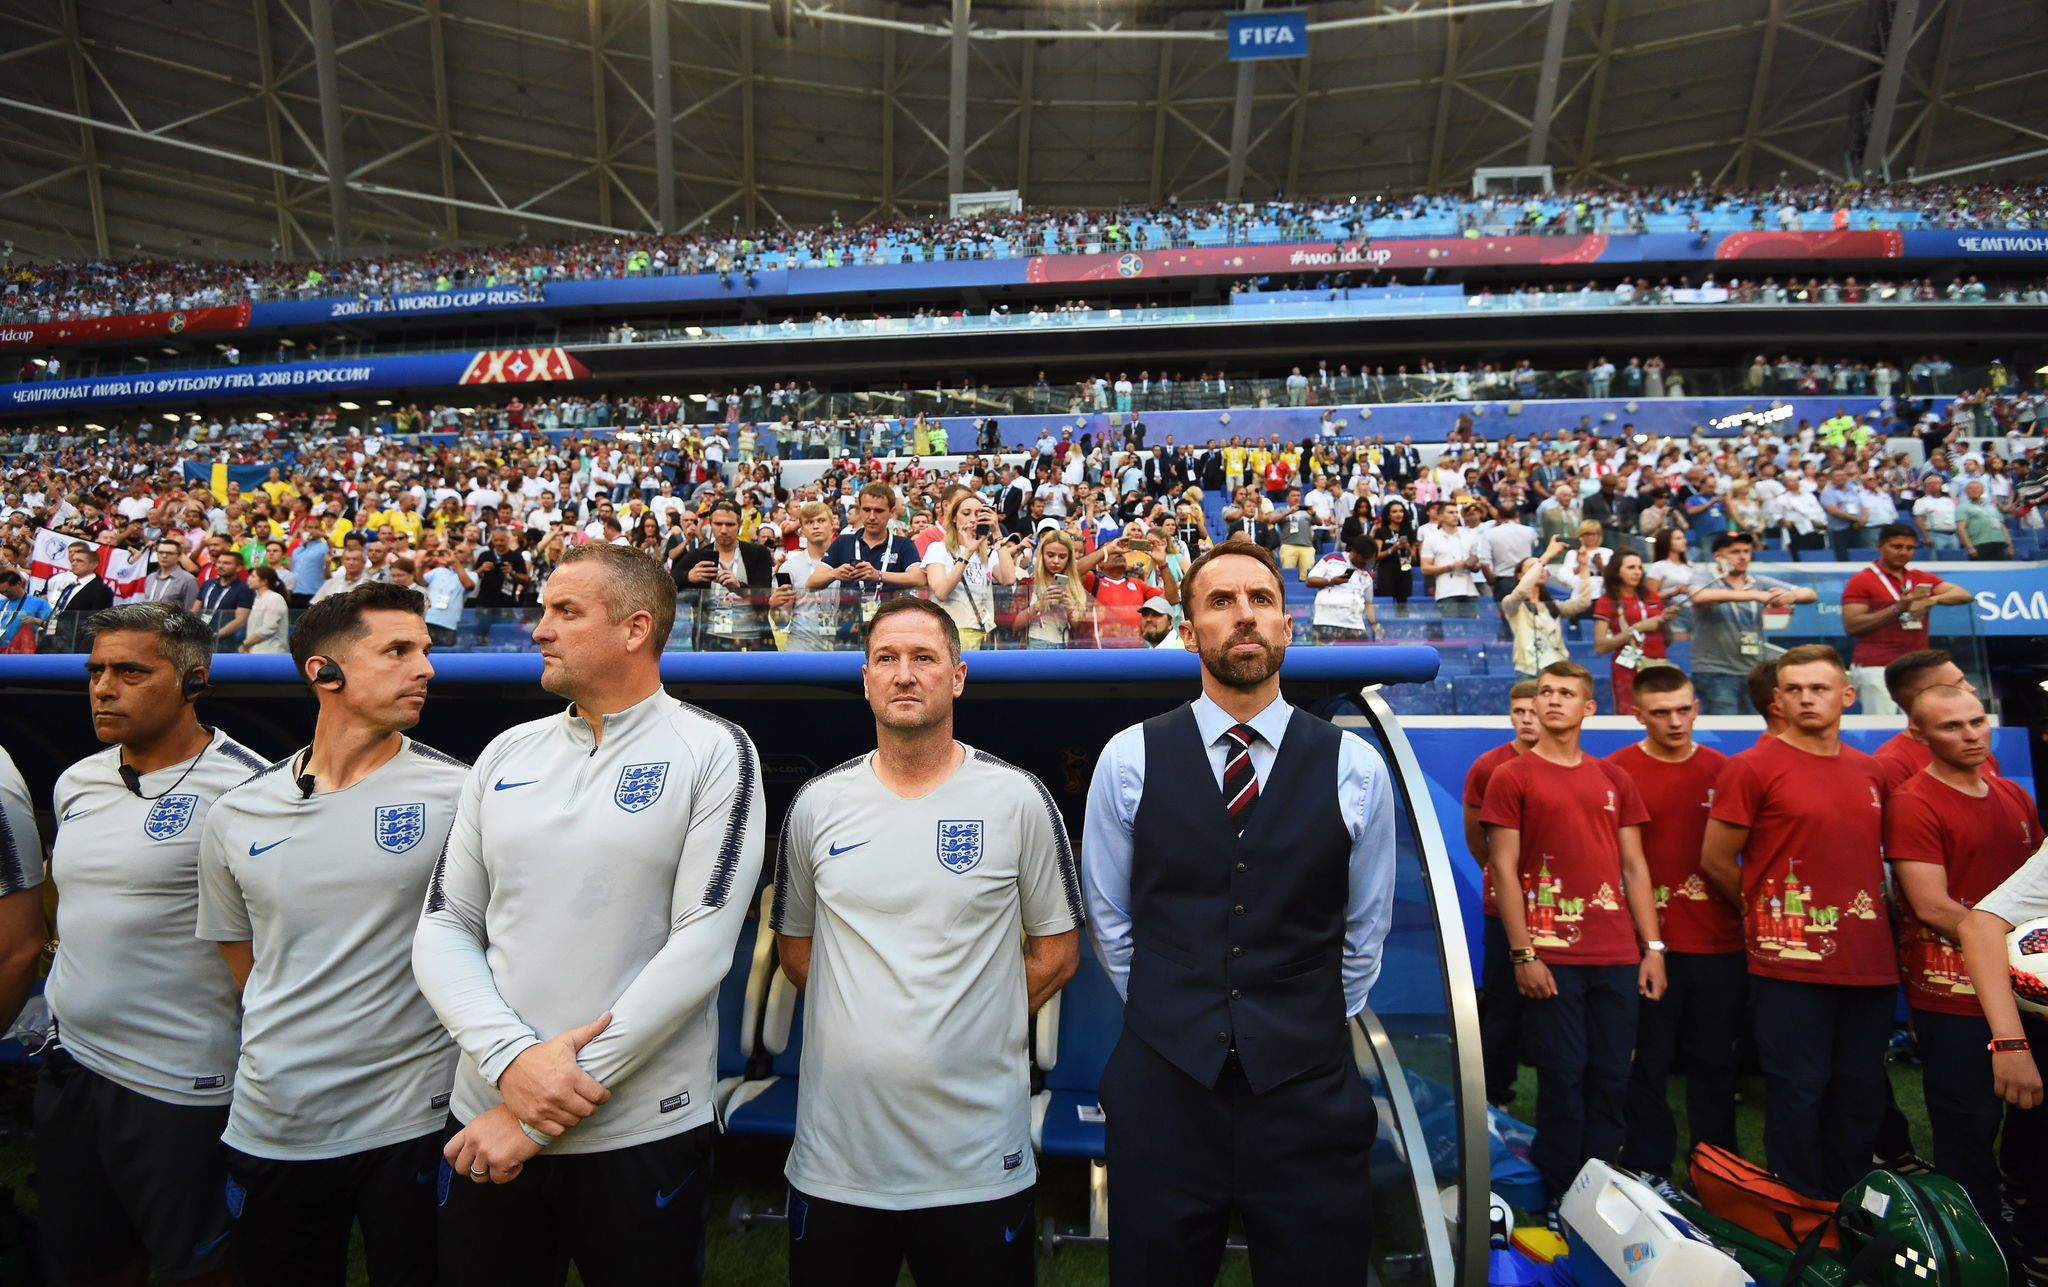 England nowhere near their potential, says manager Gareth Southgate